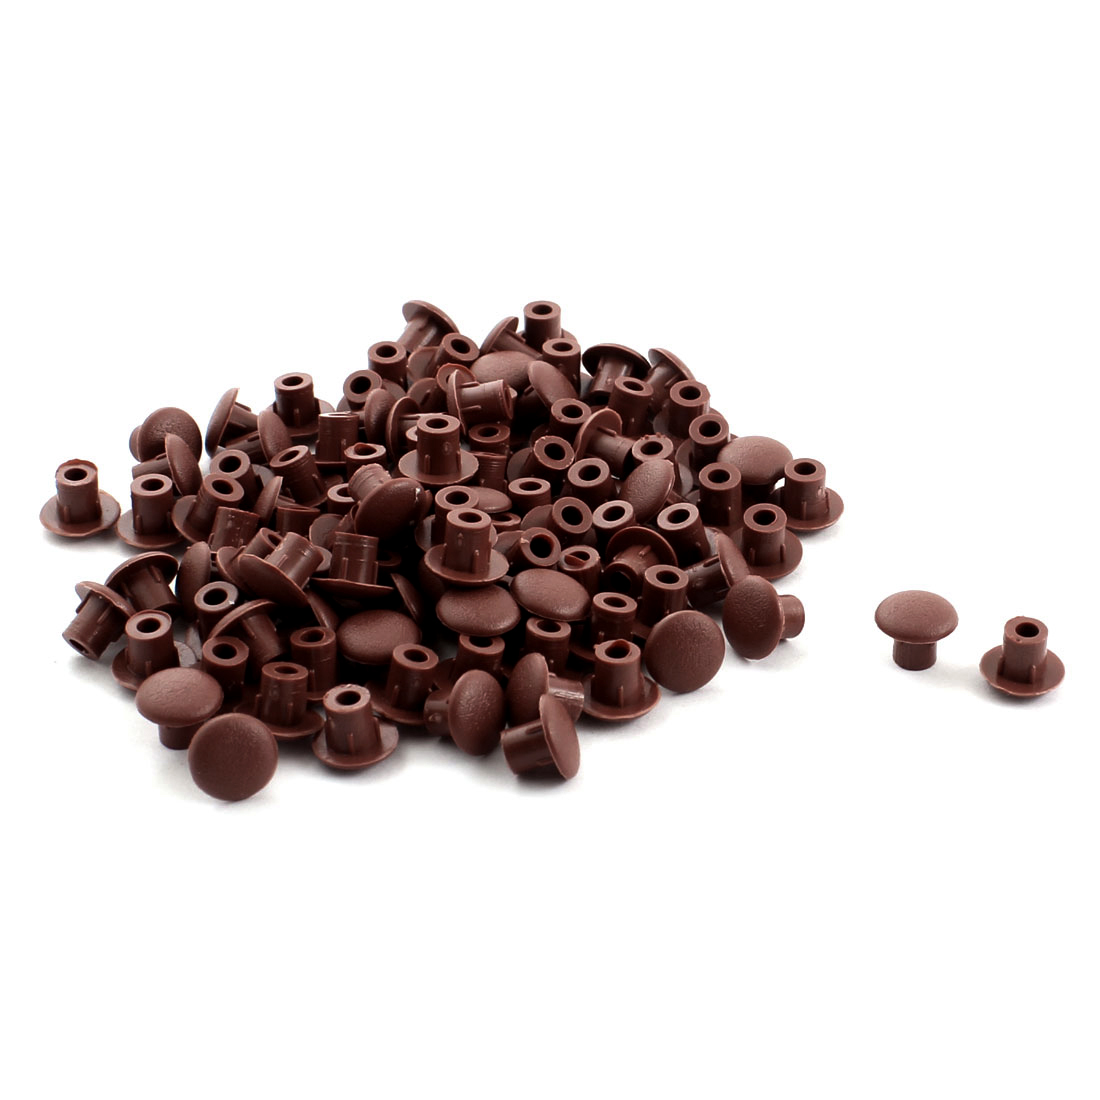 Home Furniture Decor 5mm Brown Plastic Hole Drilling Cover Plugs 100pcs